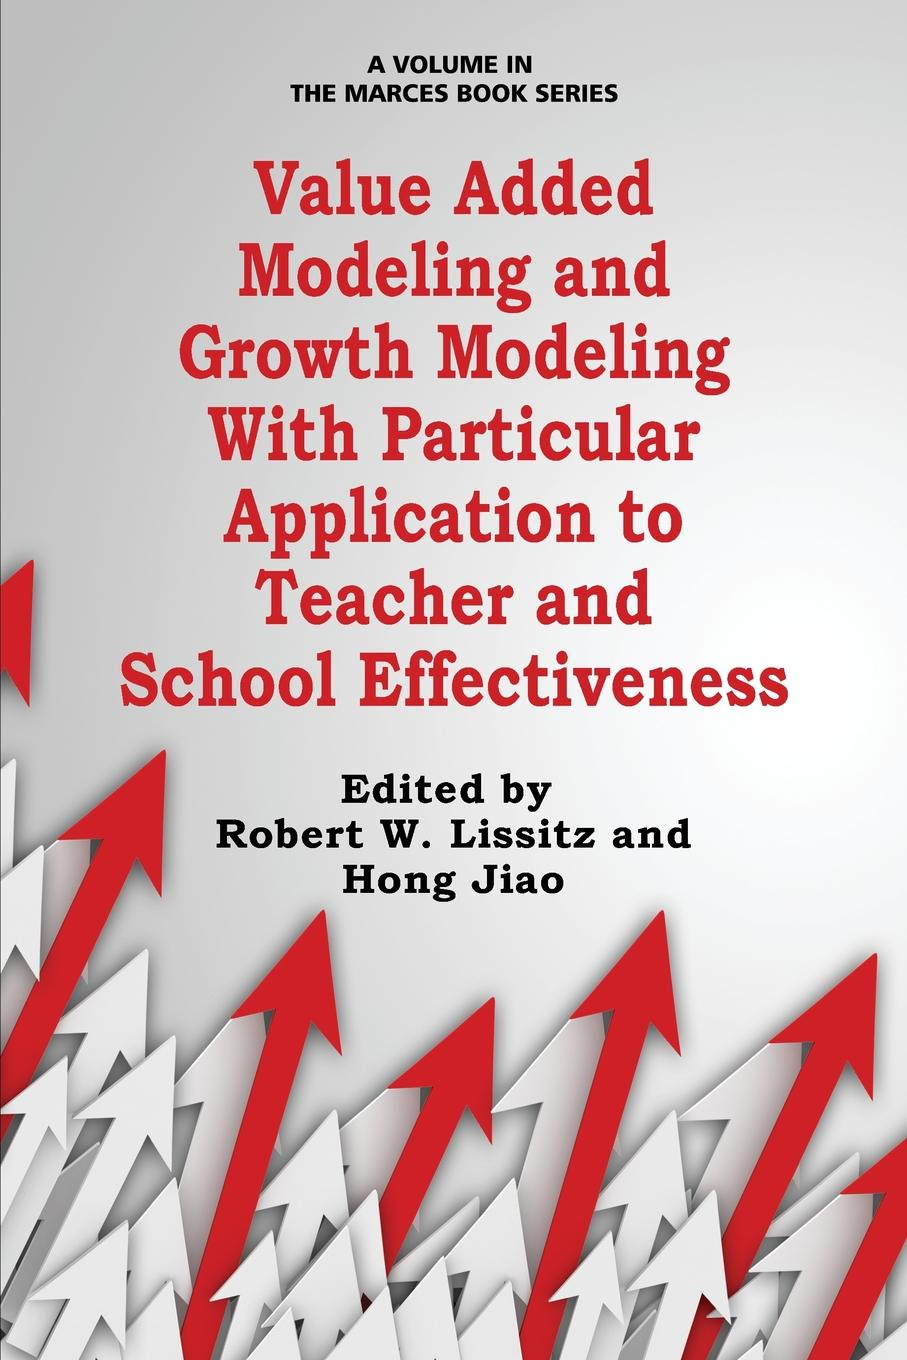 цена на Value Added Modeling and Growth Modeling with Particular Application to Teacher and School Effectiveness